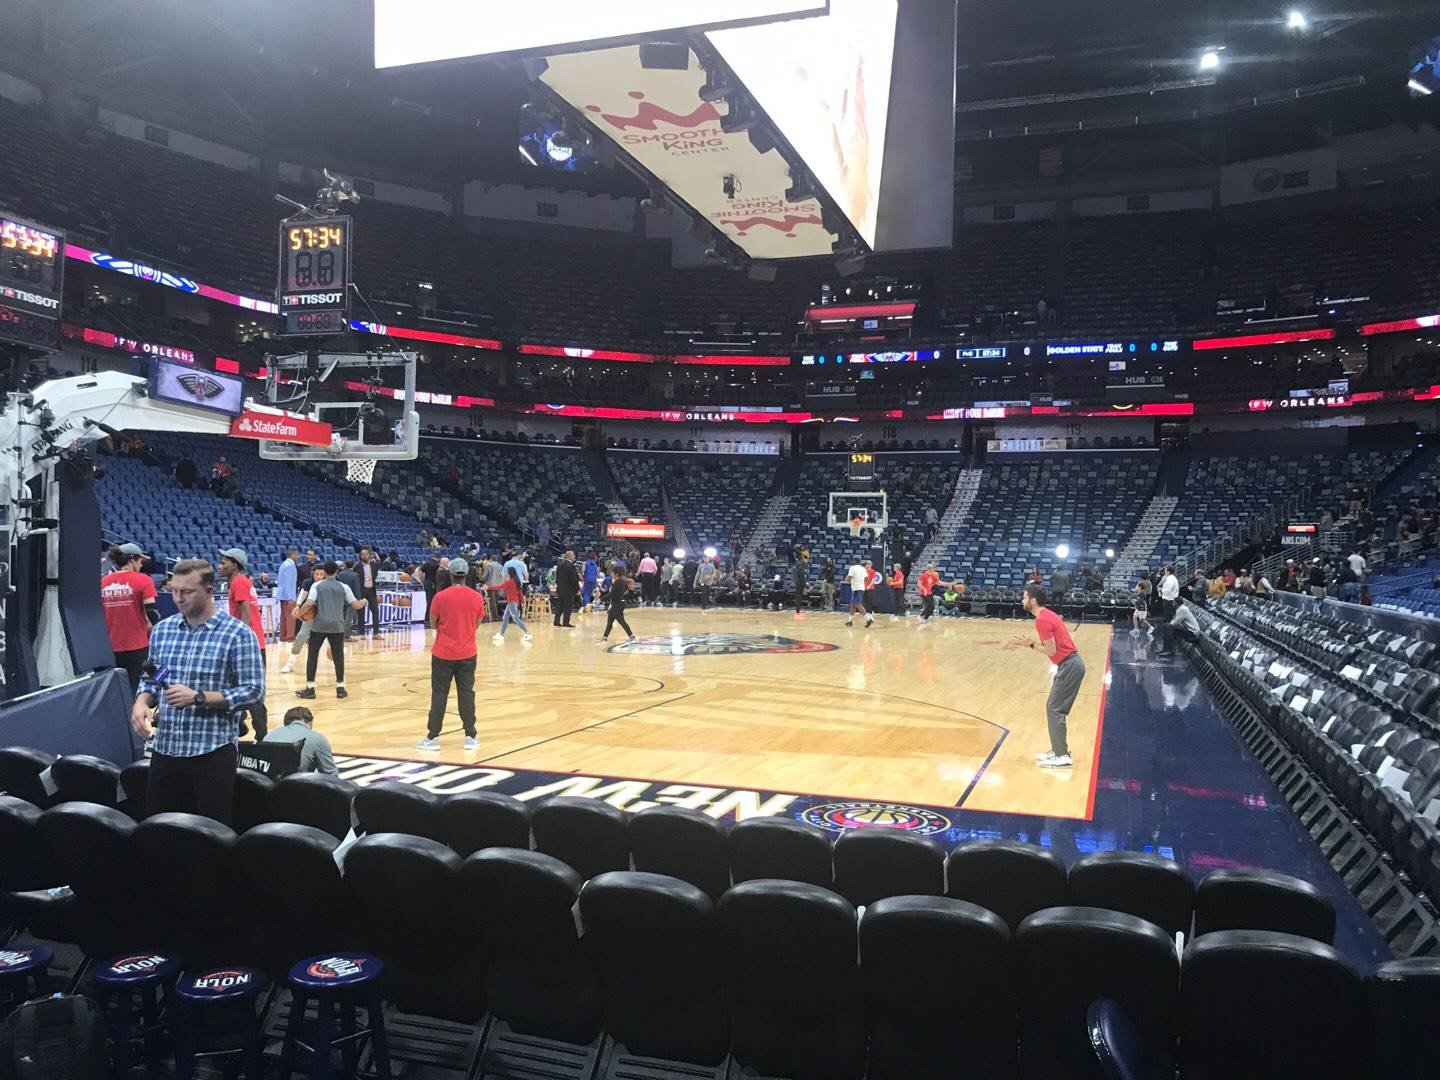 Smoothie King Center Section 105 Row 1 Seat 1